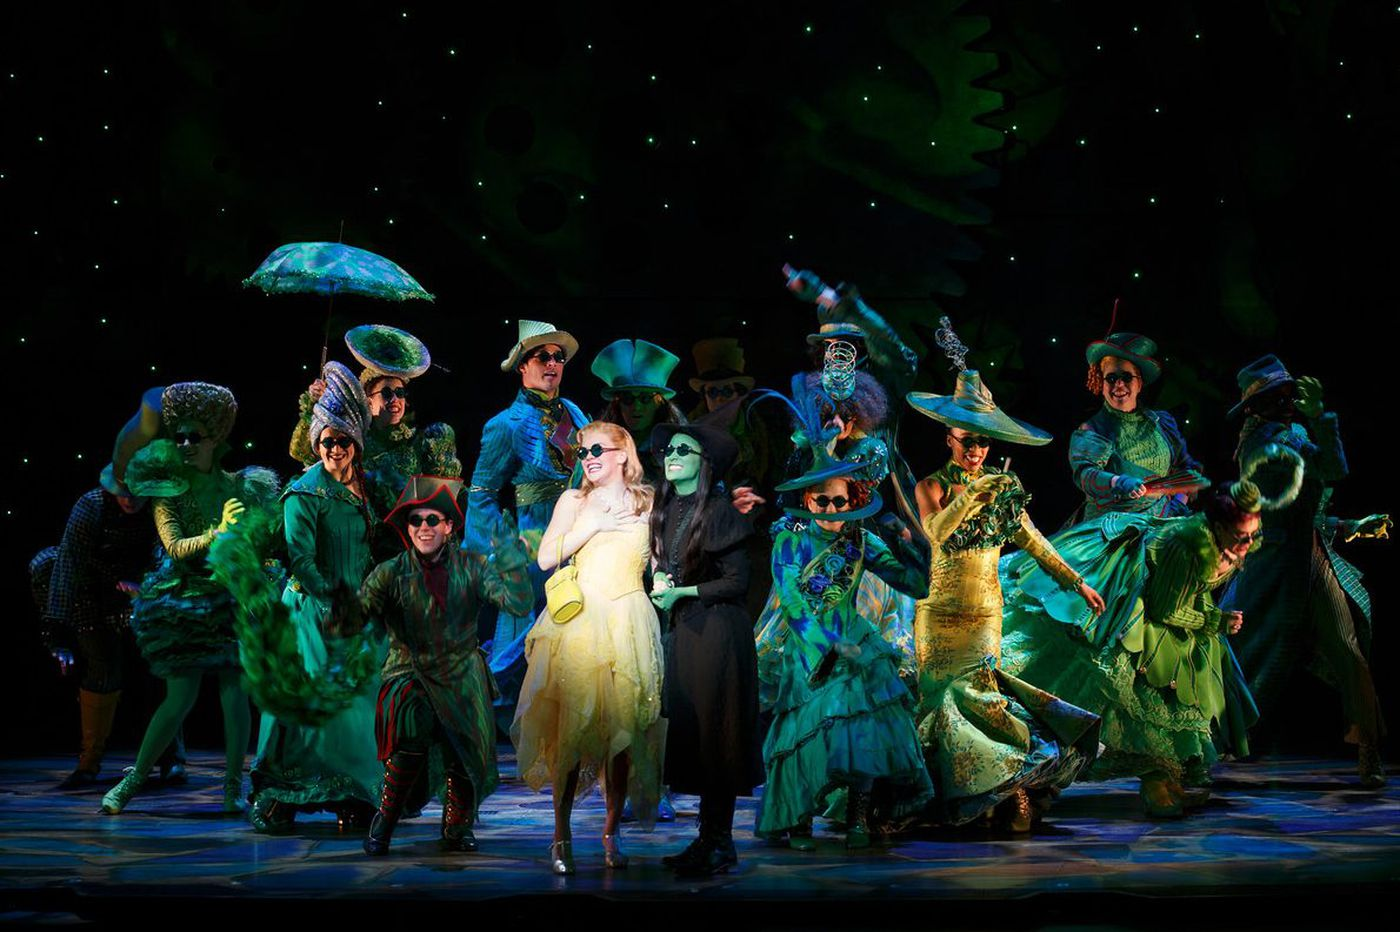 'Wicked': Delicious take on 'The Wizard of Oz' is a fantastic frenzy of song and movement